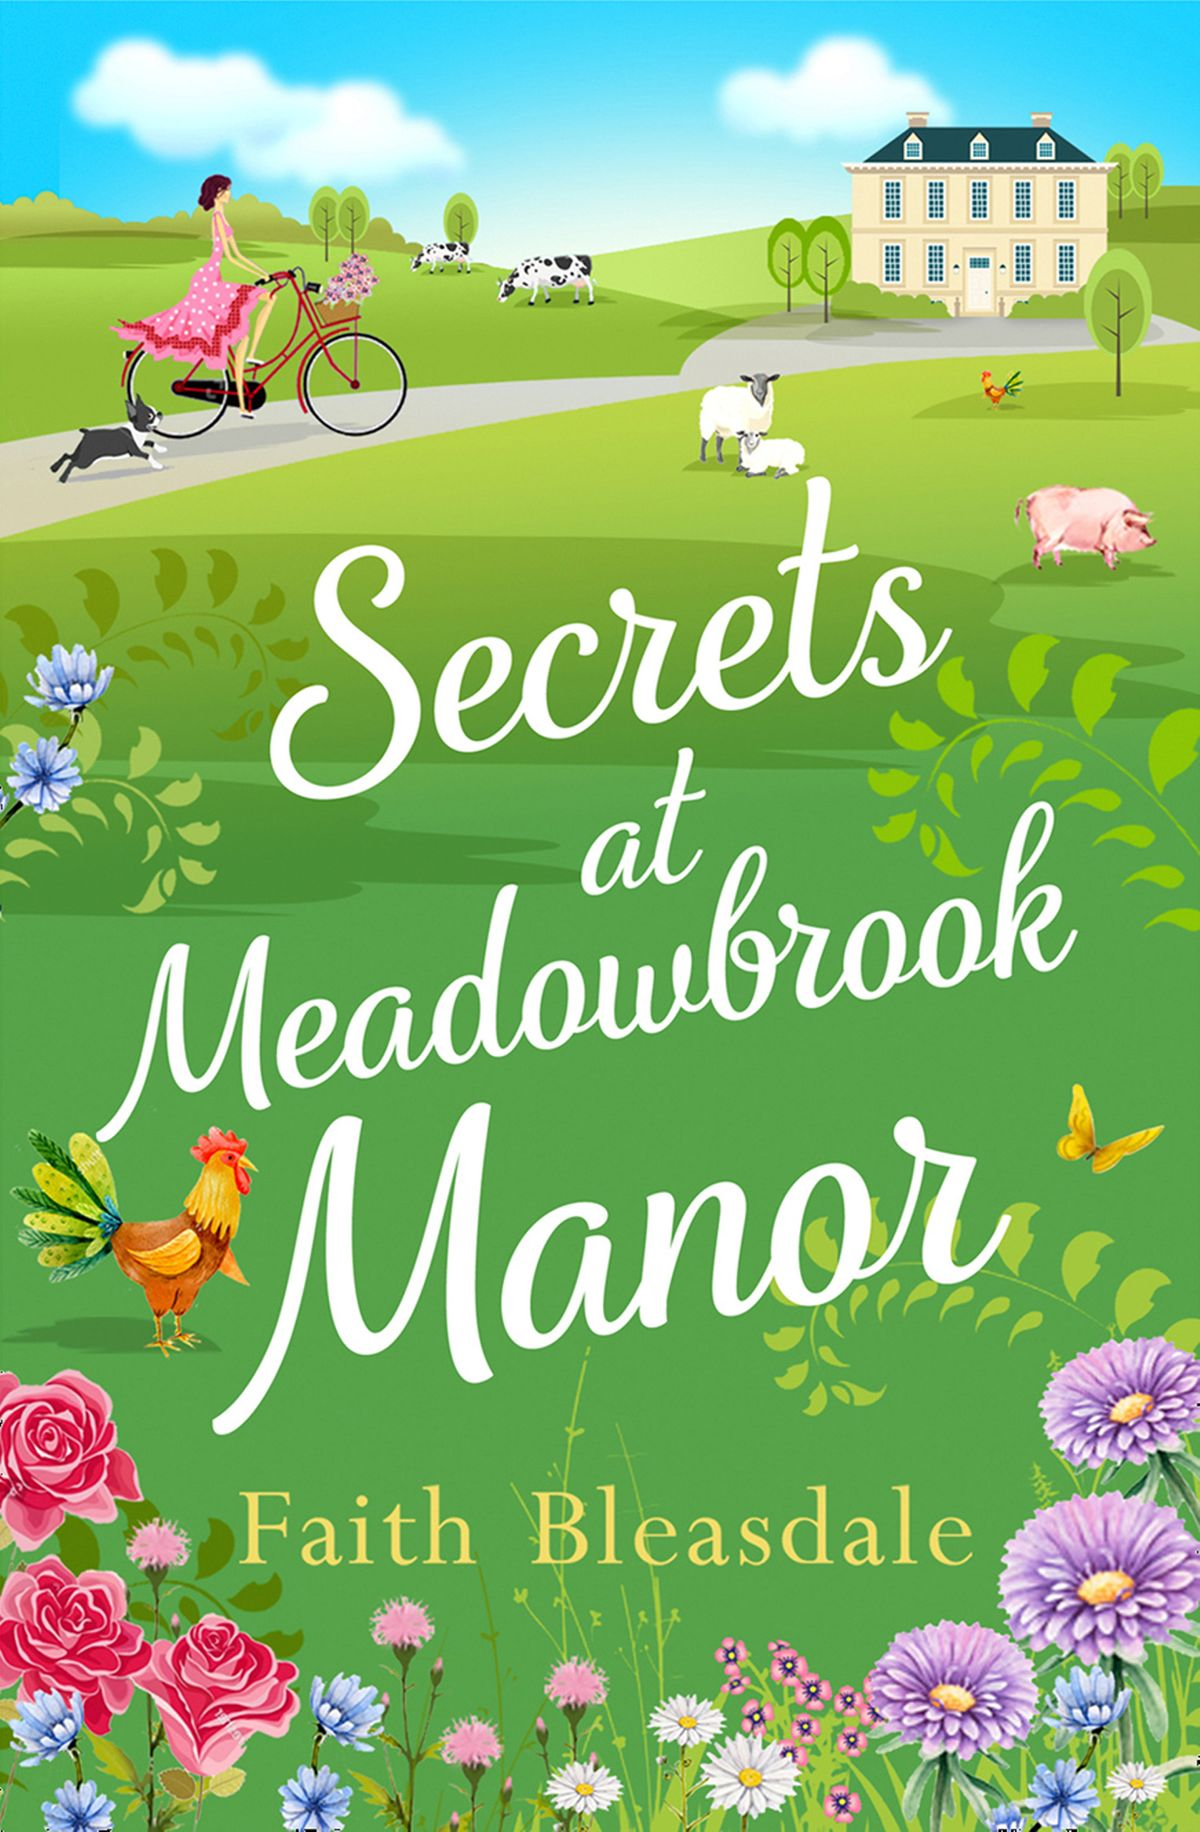 secrets  meadowbrook manor meadowbrook manor book   walmartcom